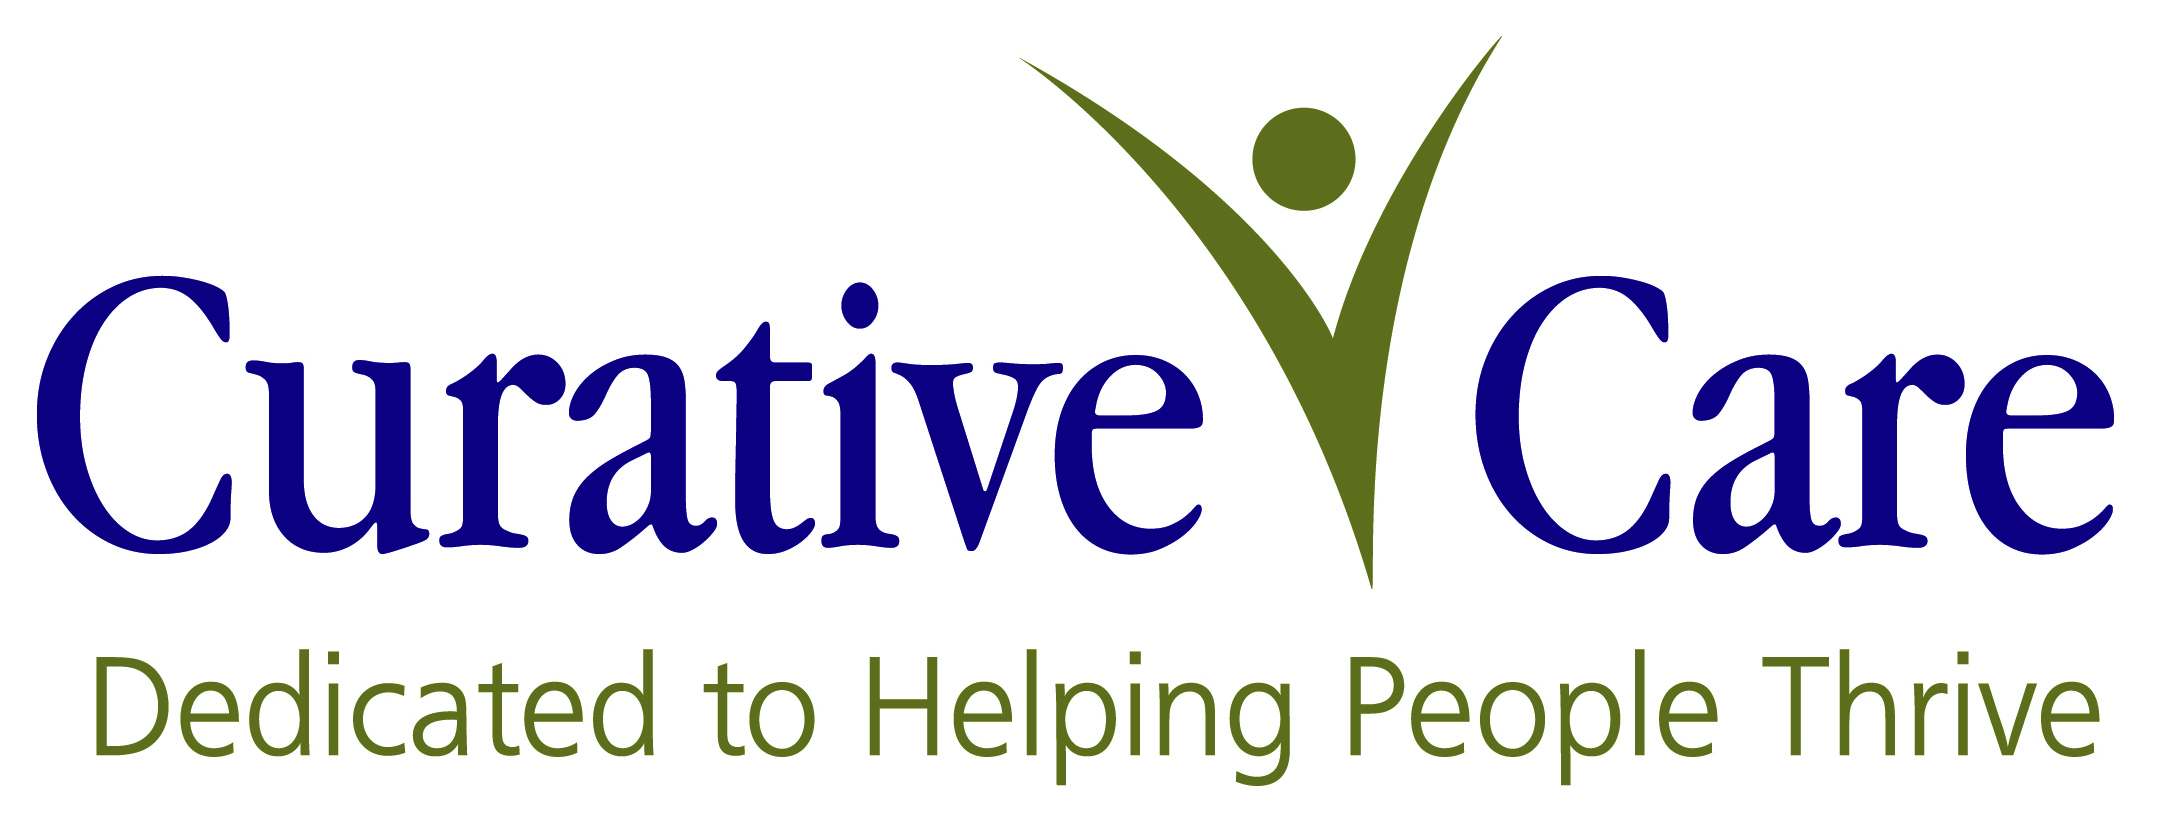 Curative Care Network